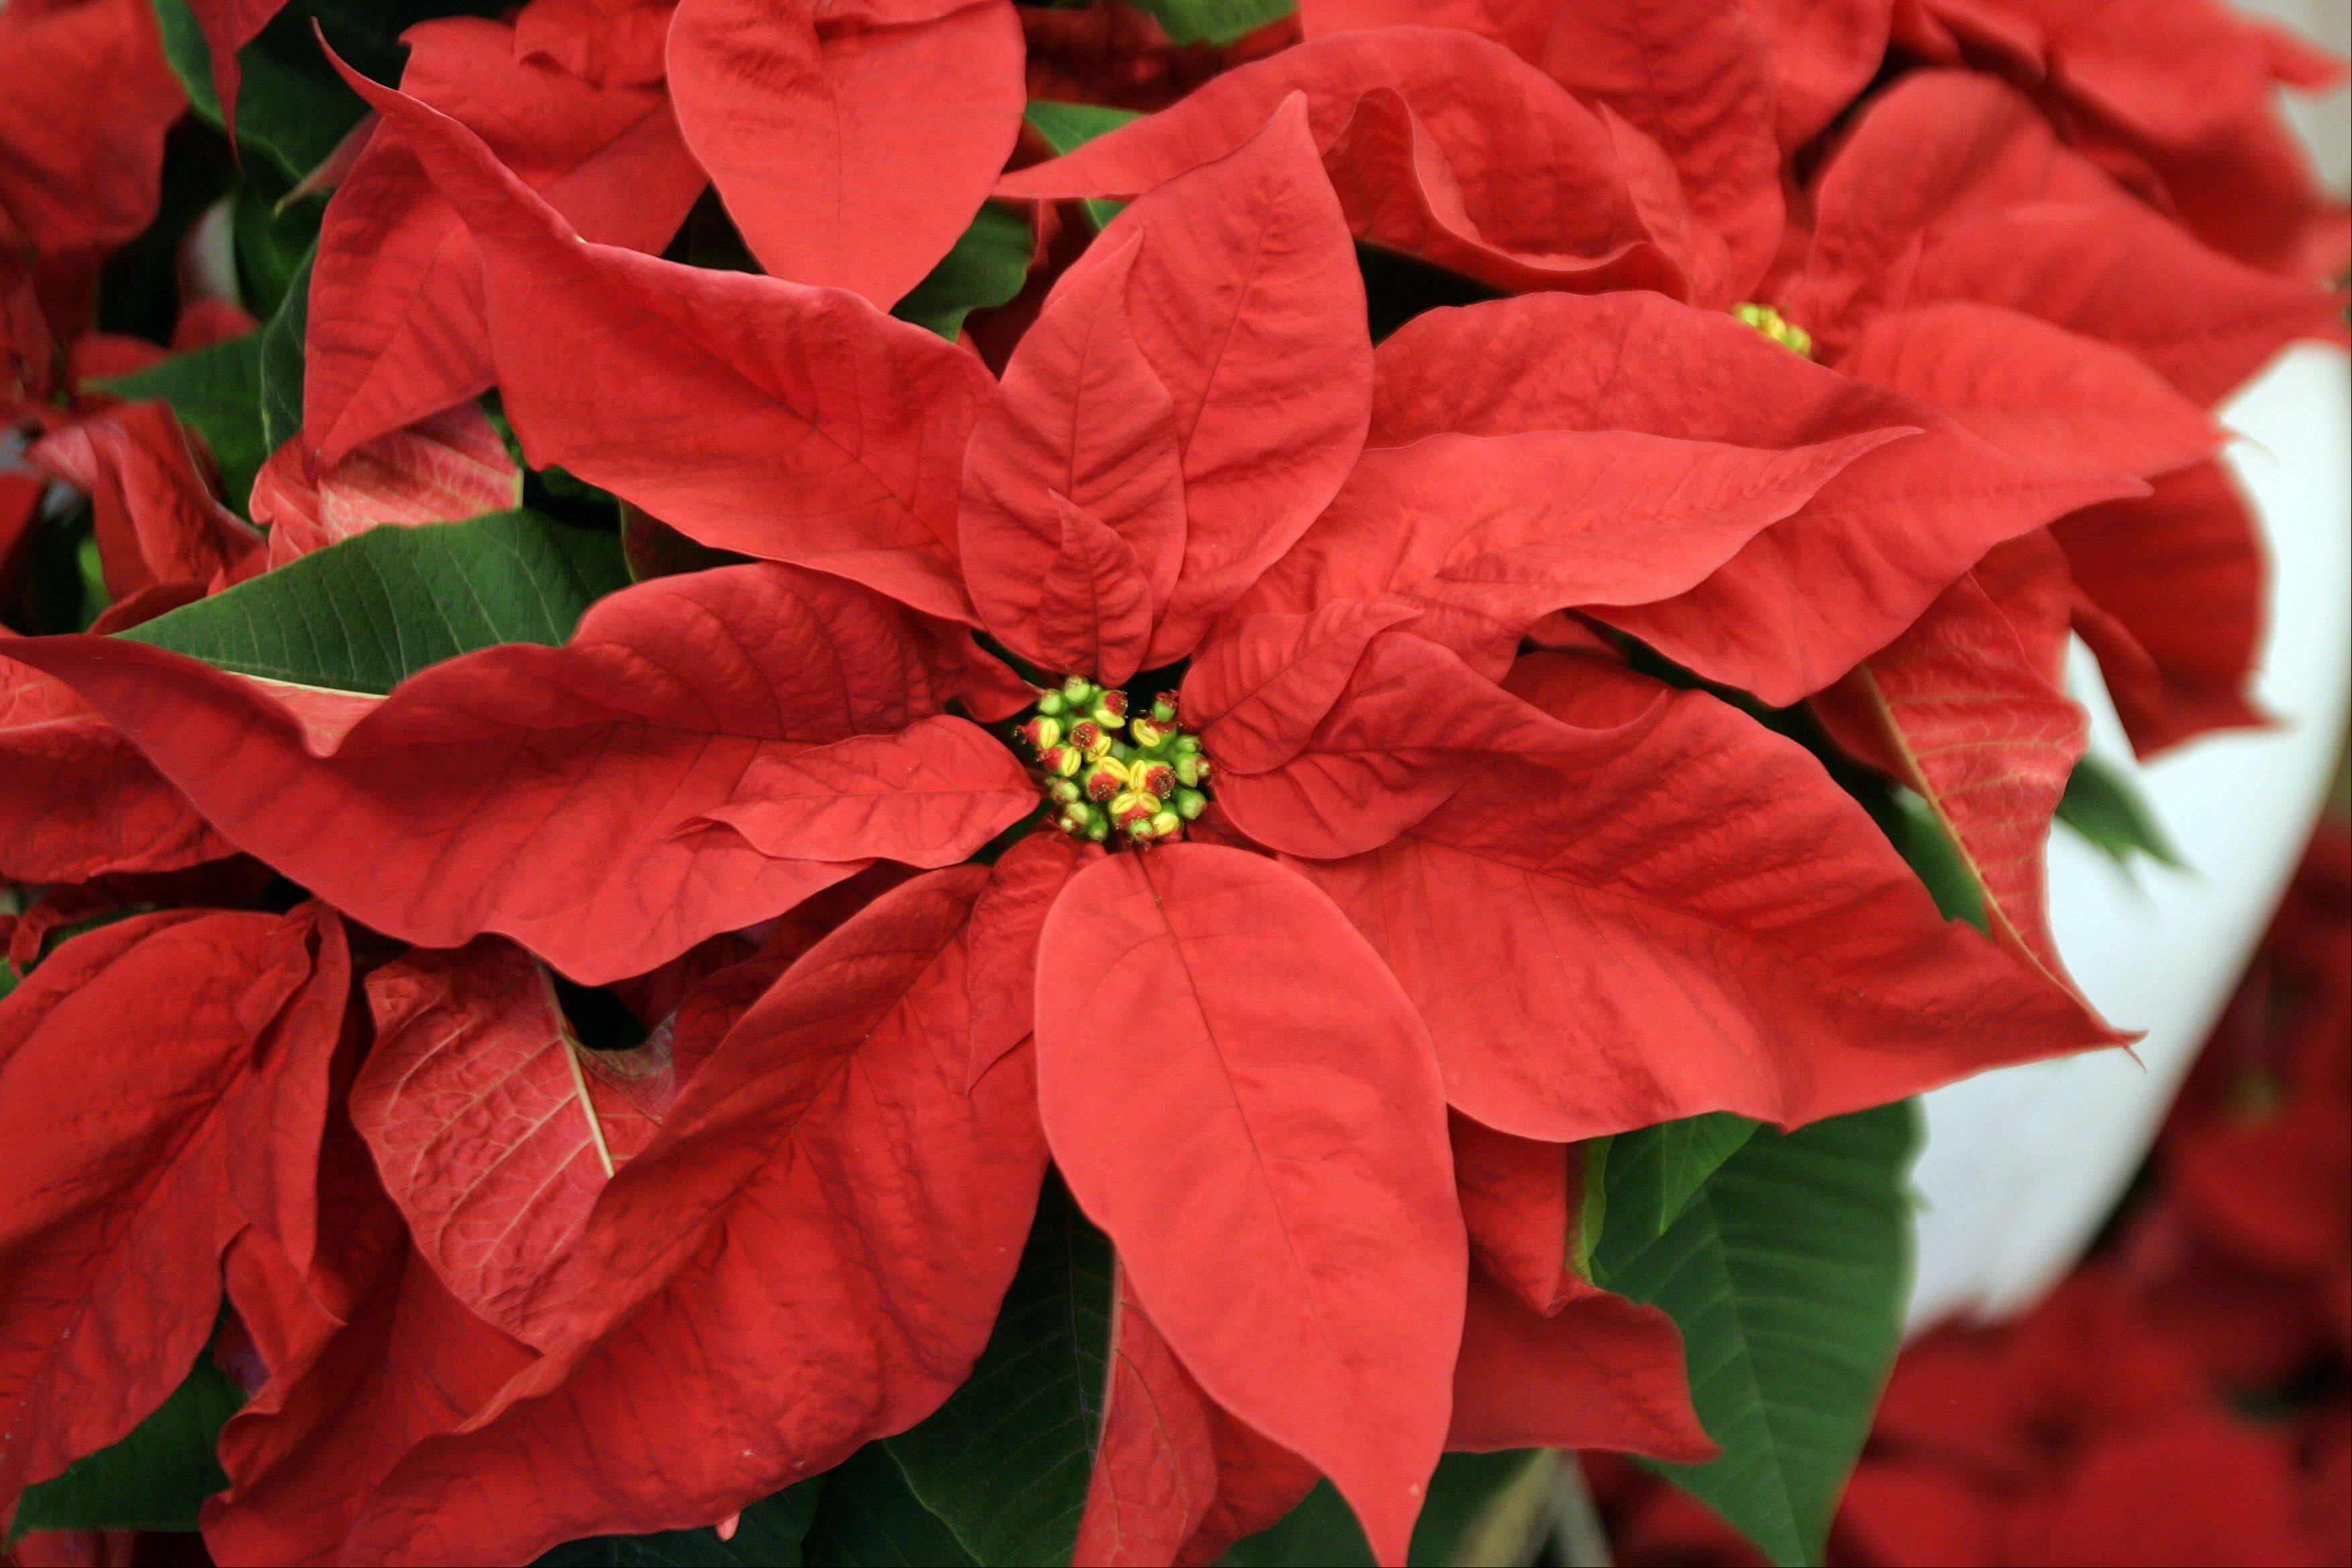 Cantigny's greenhouses feature 14 varieties of poinsettias.